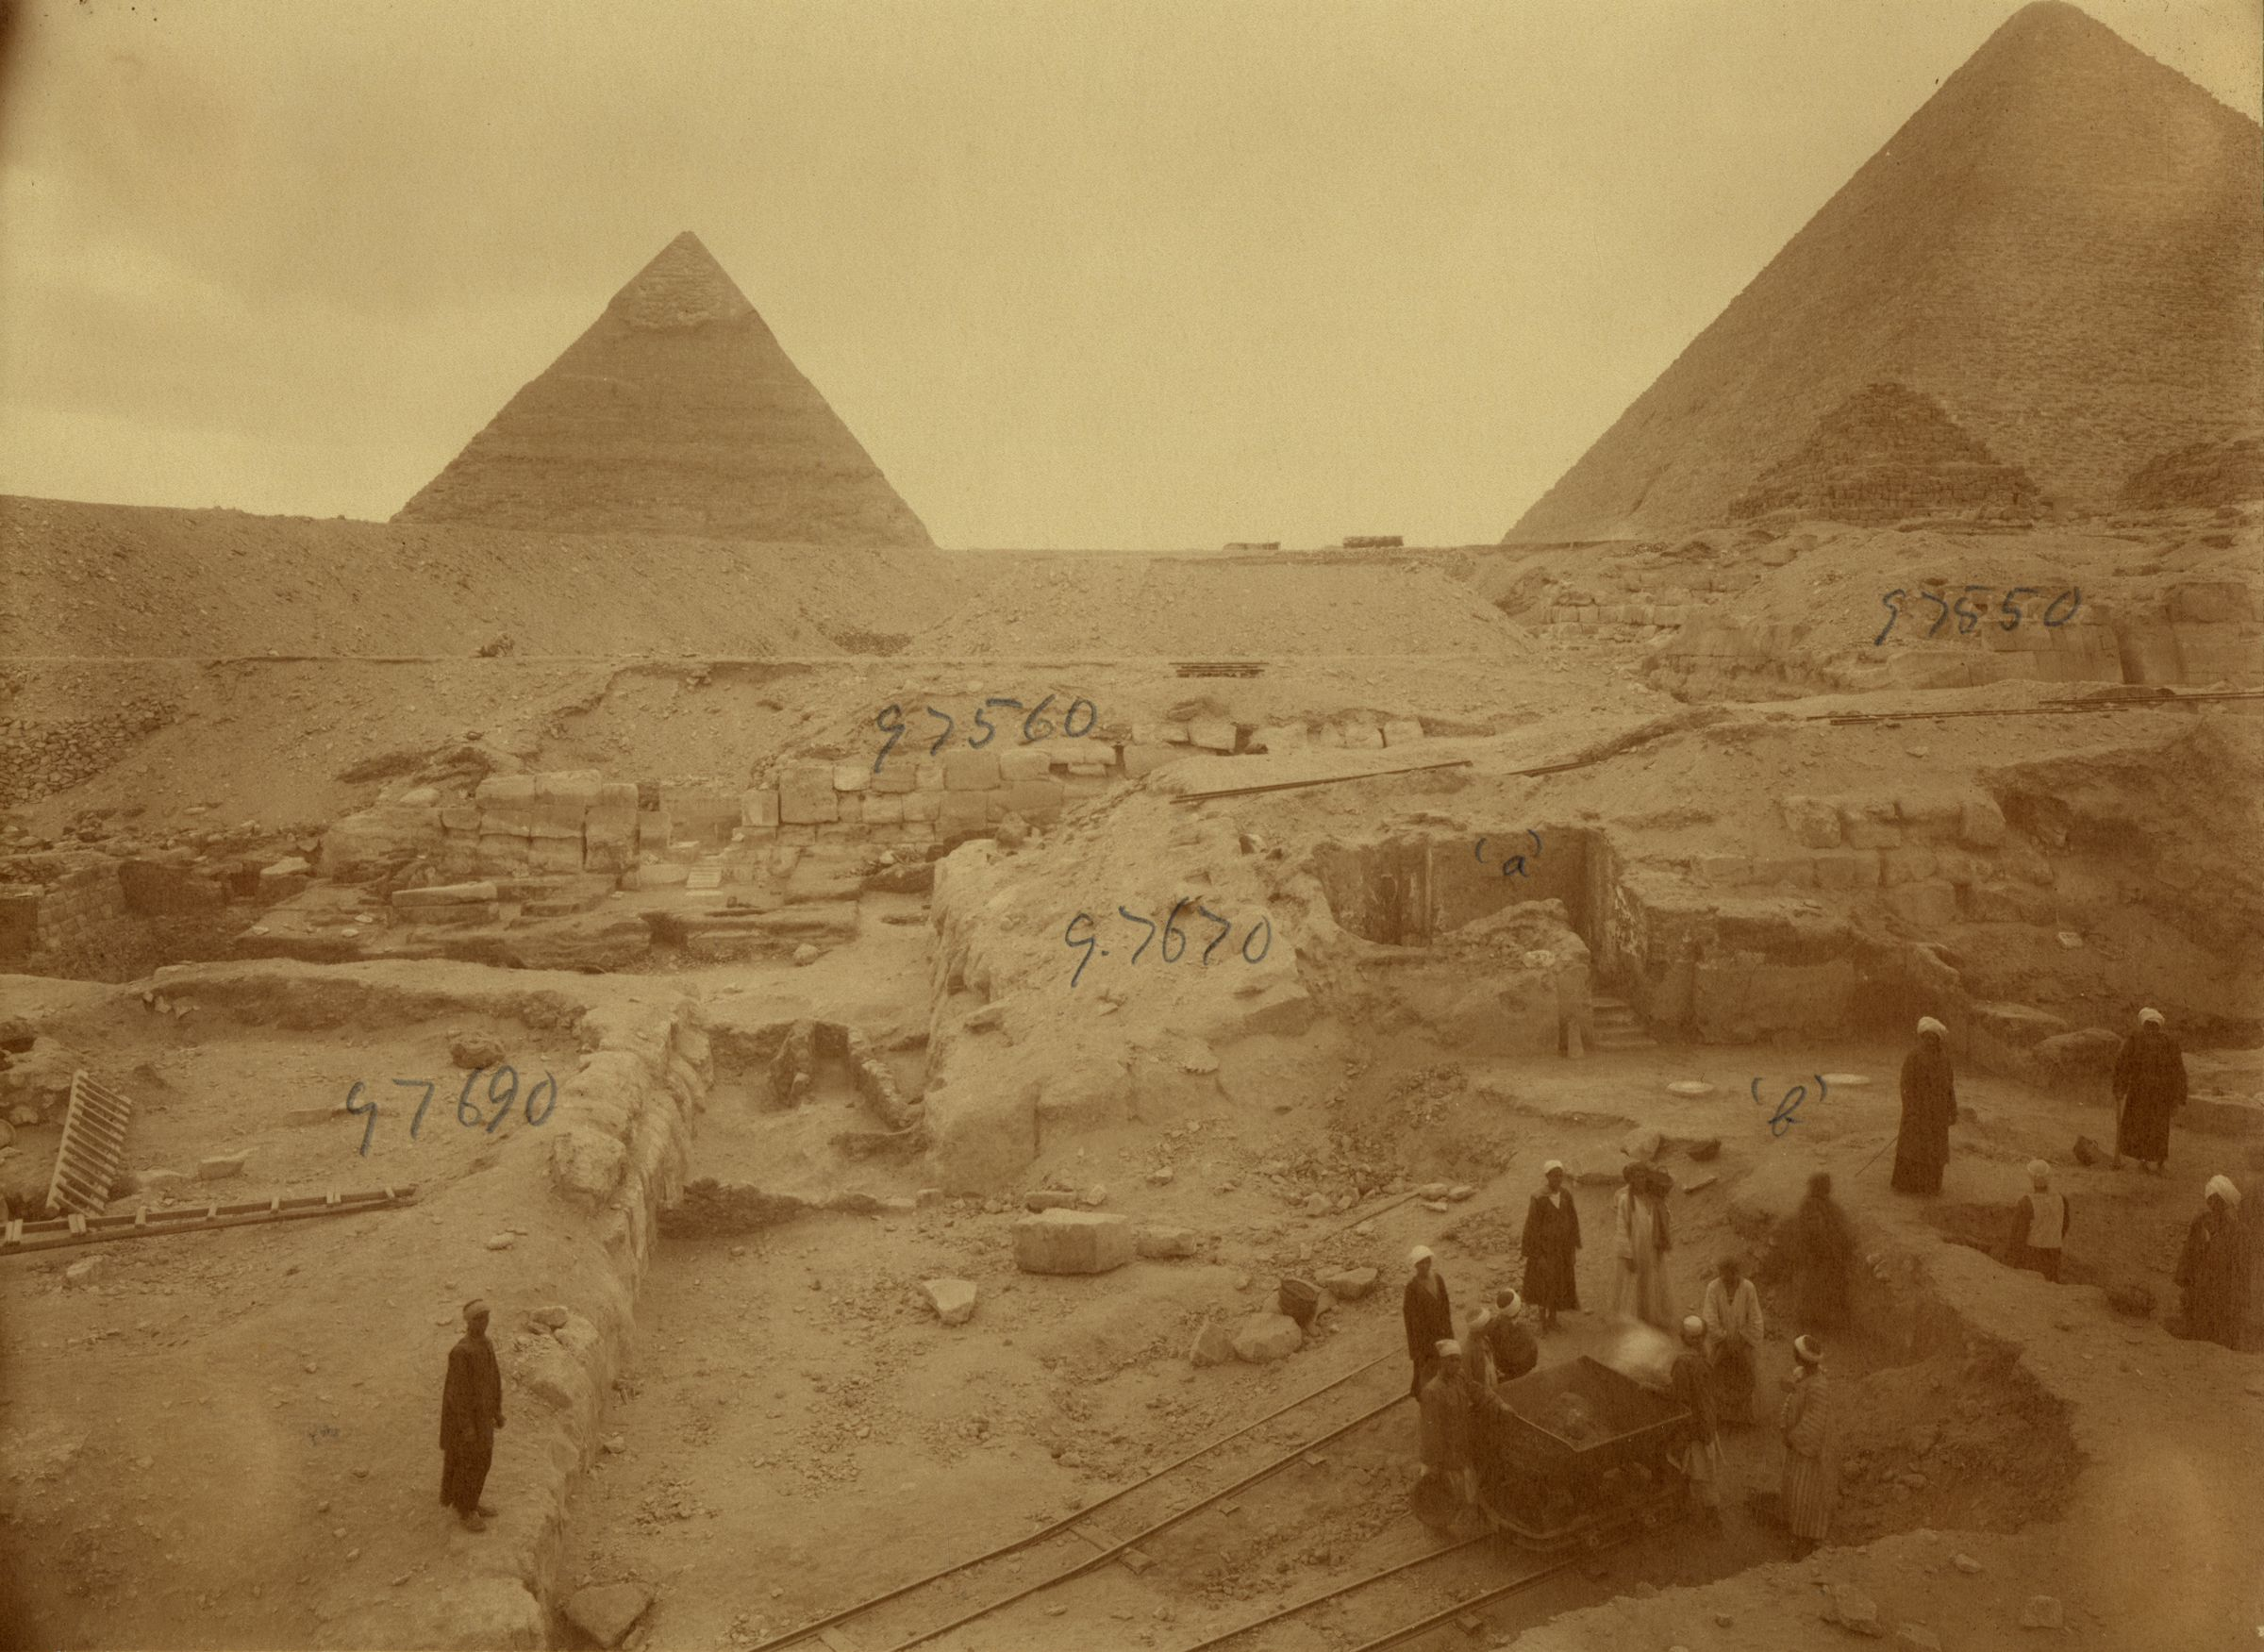 Eastern Cemetery: Site: Giza; View: G 7690, G 7560, G 7670